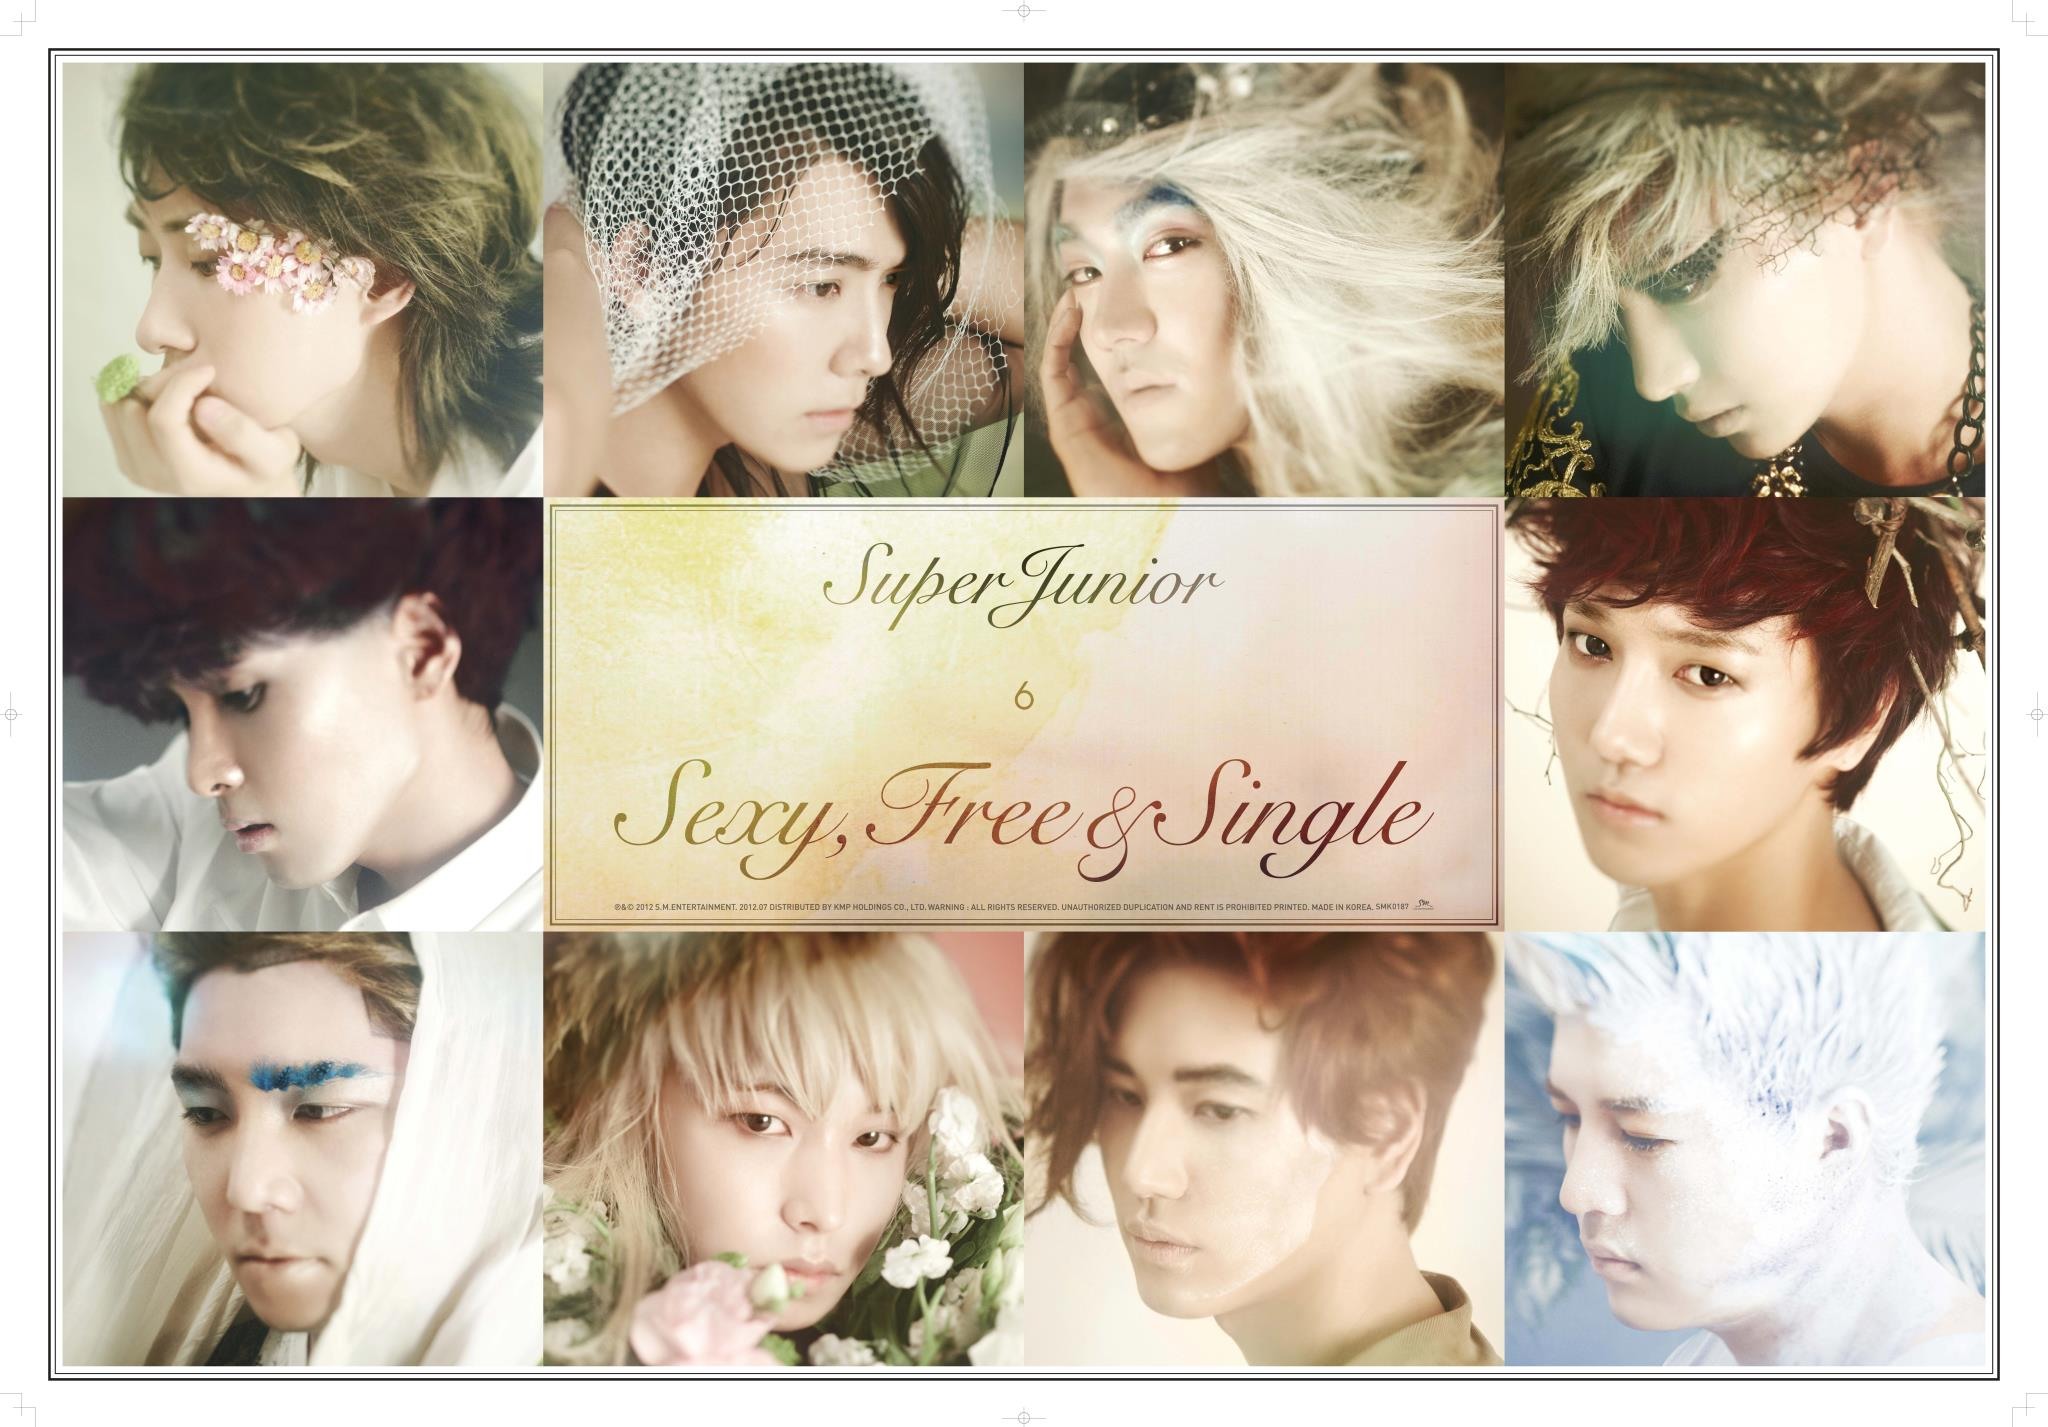 super-junior-6jib-poster.jpg